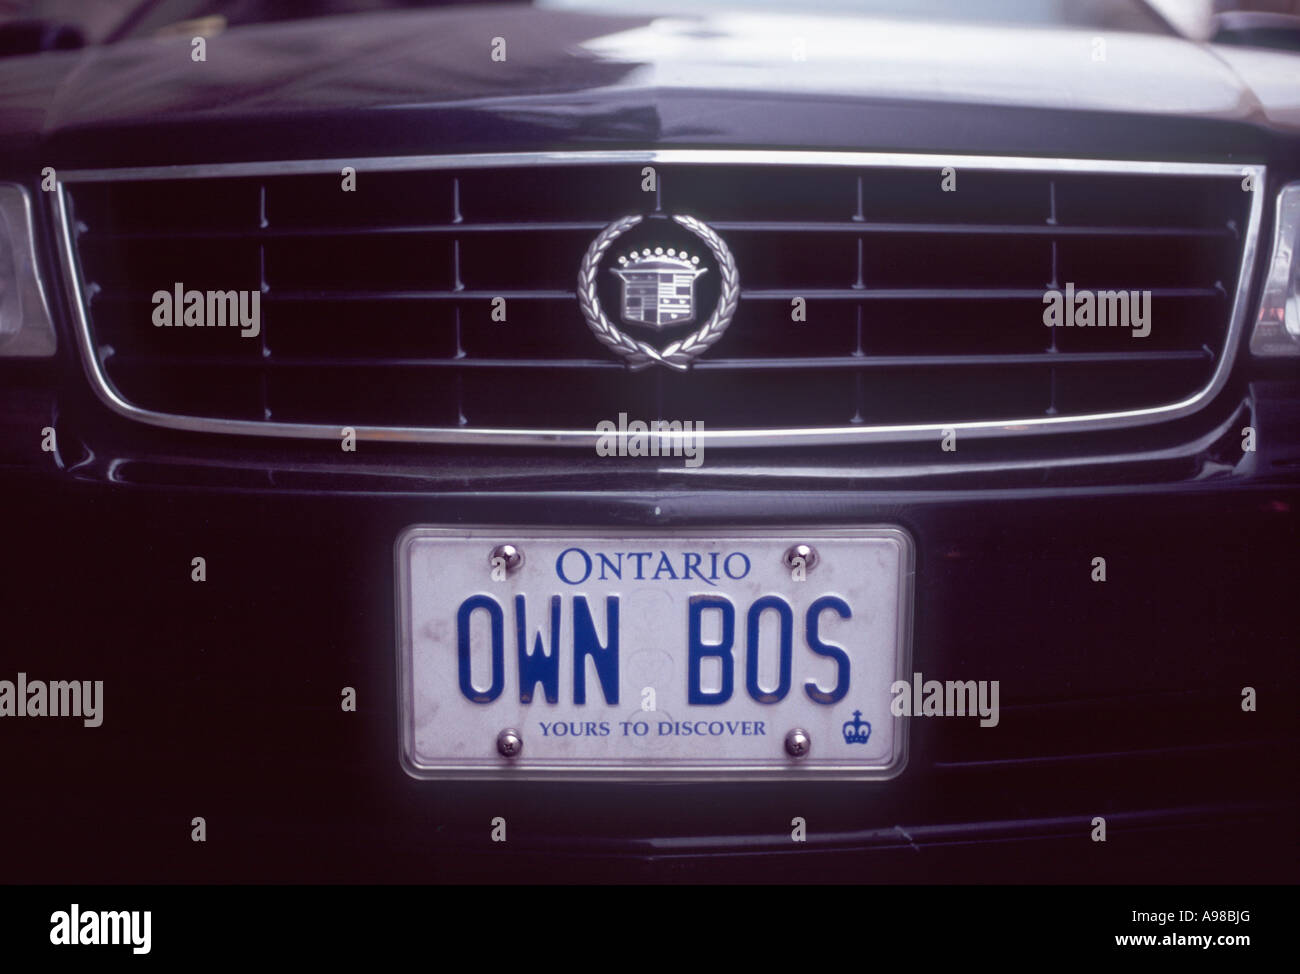 Own Boss: Personalised licence plate on front of Cadillac car Stock ...